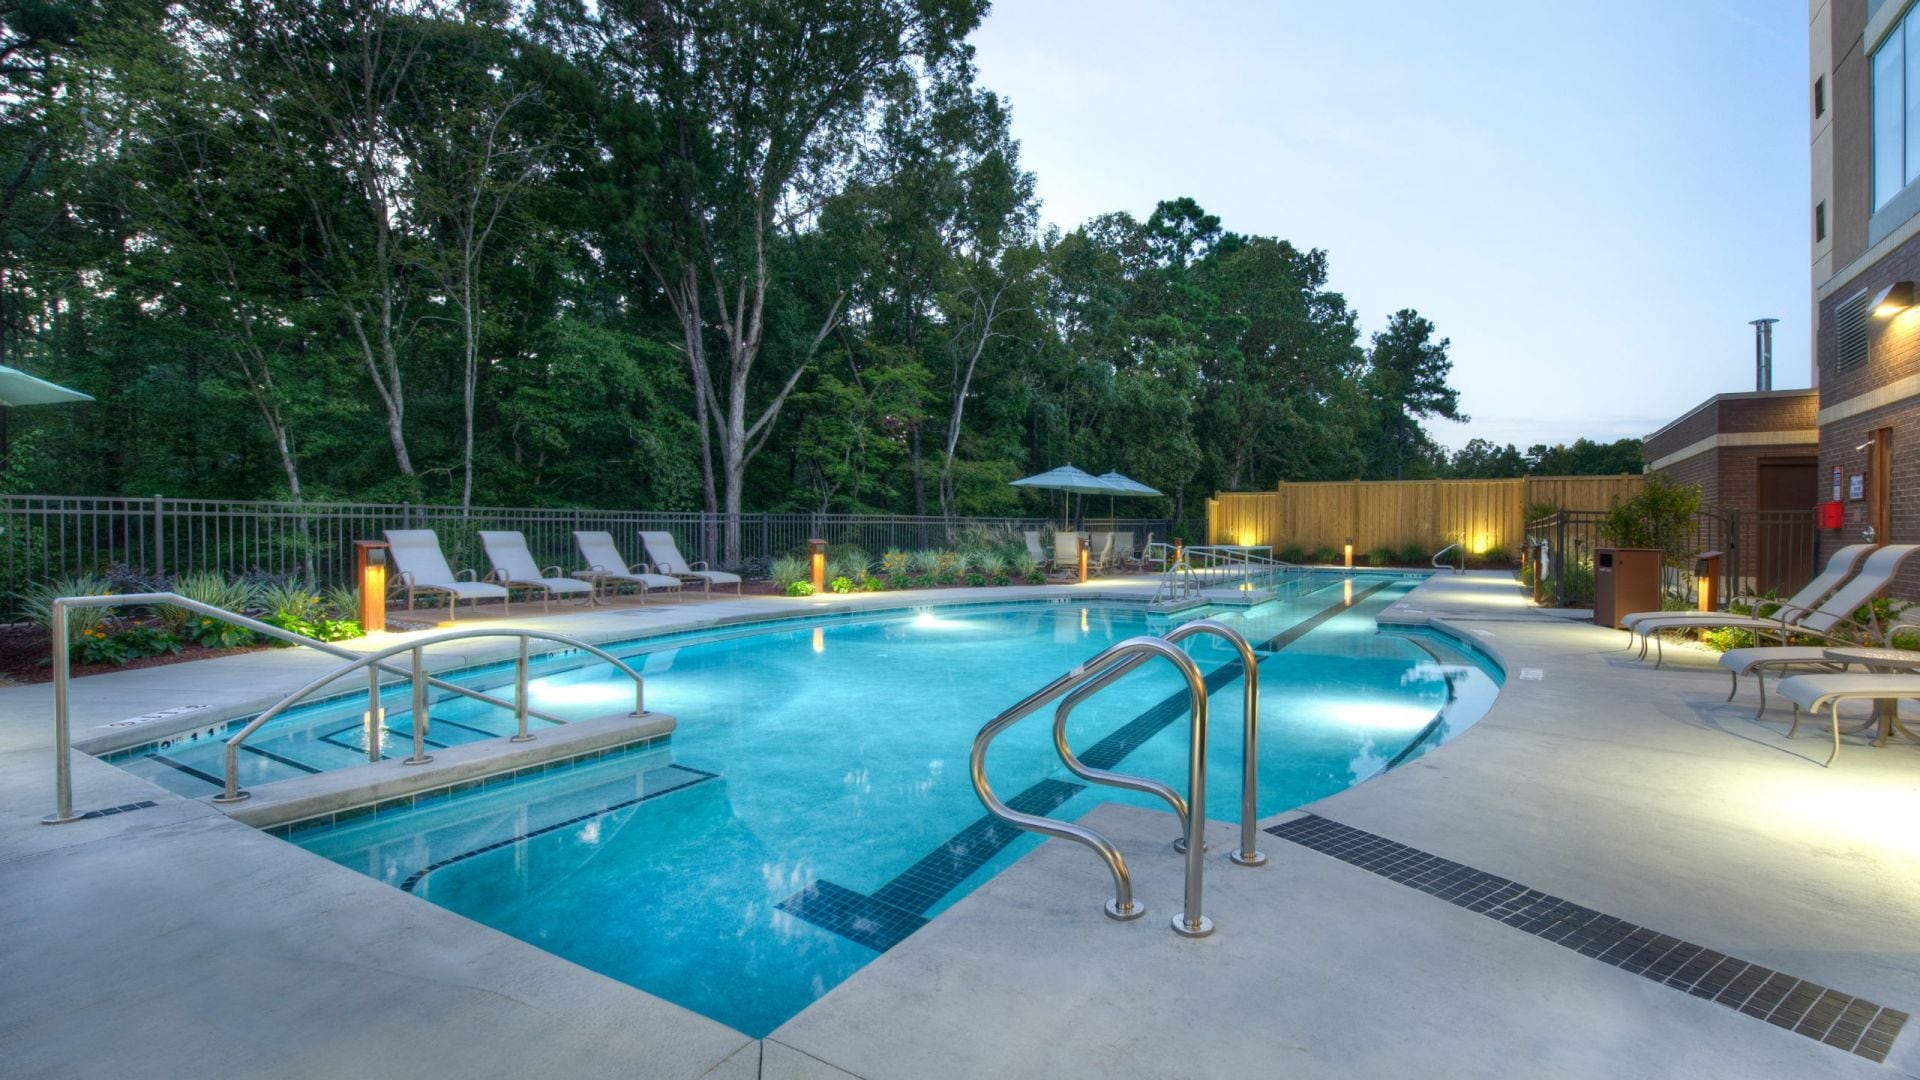 Hyatt Place Durham Pool